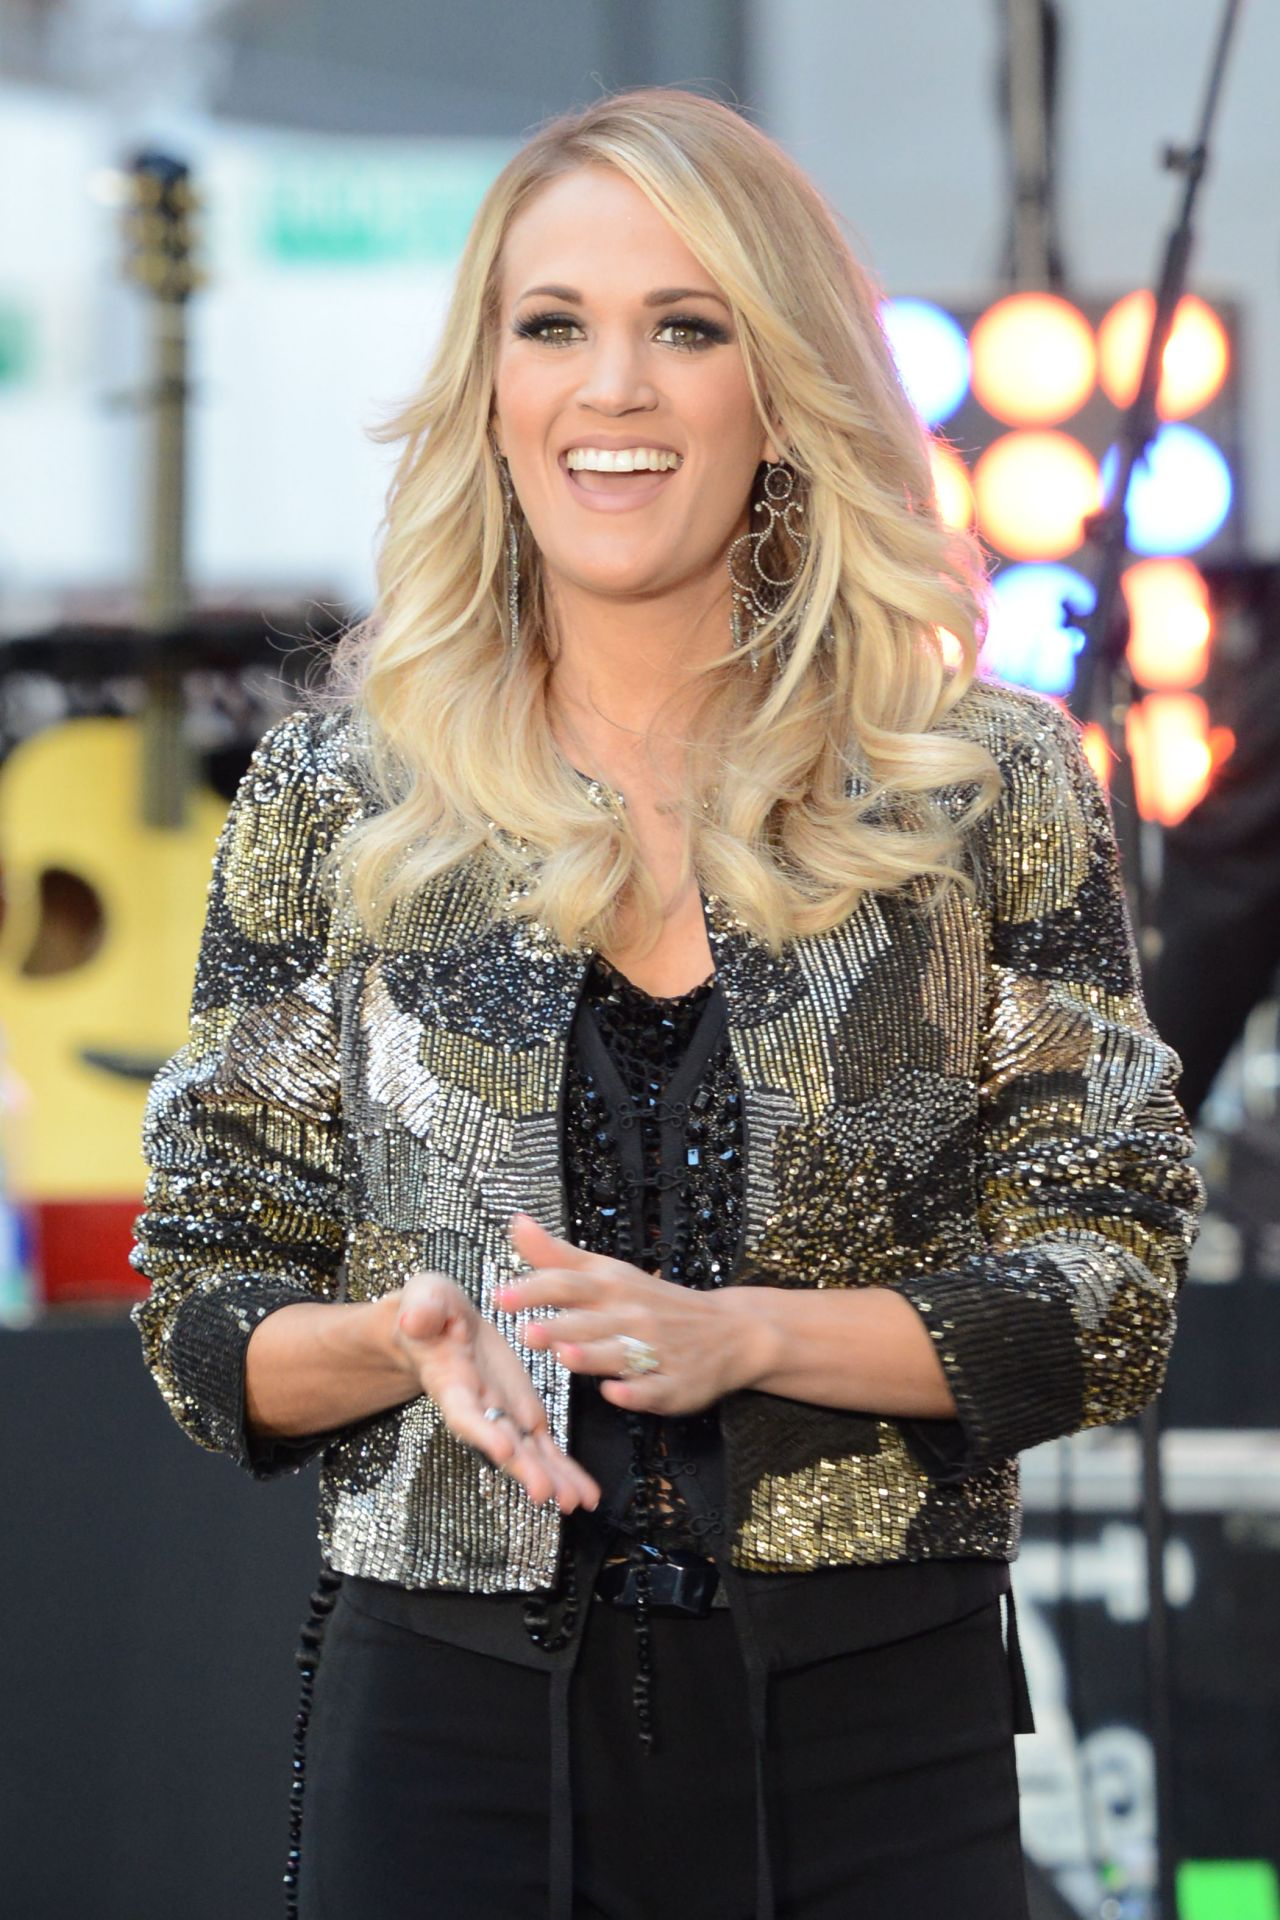 Carrie Underwood Performing At The Today Show In New